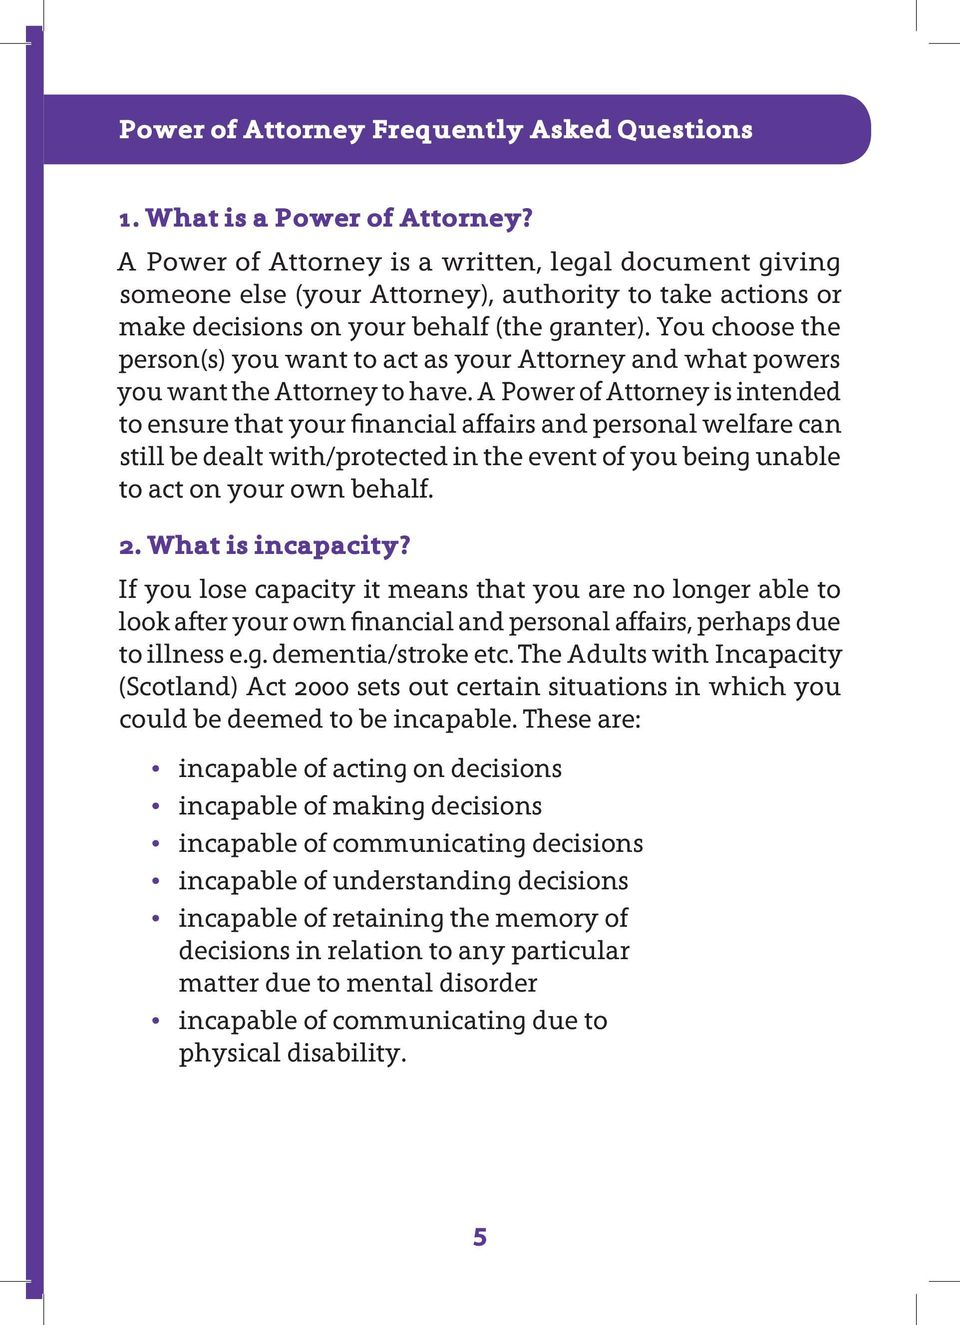 You choose the person(s) you want to act as your Attorney and what powers you want the Attorney to have.